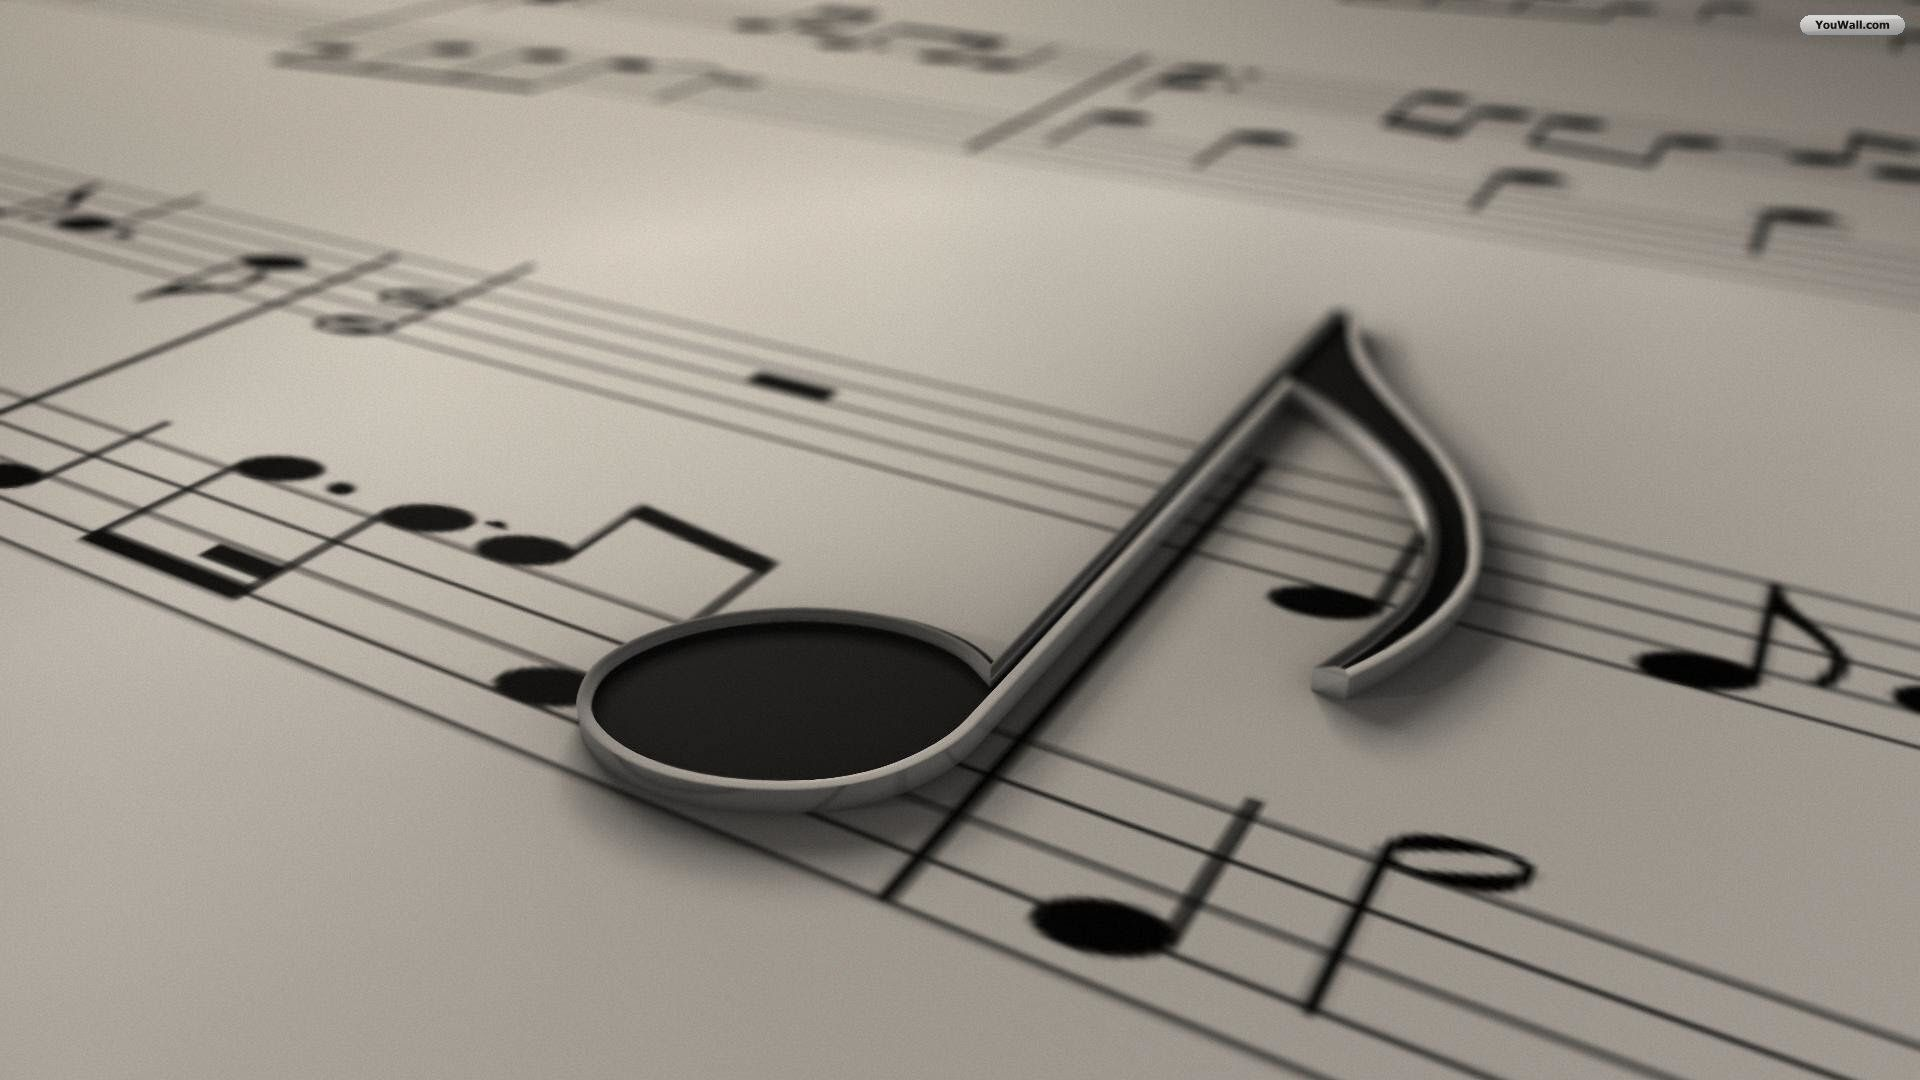 Music Notes Photography Picture Wallpaper Hd Desktop